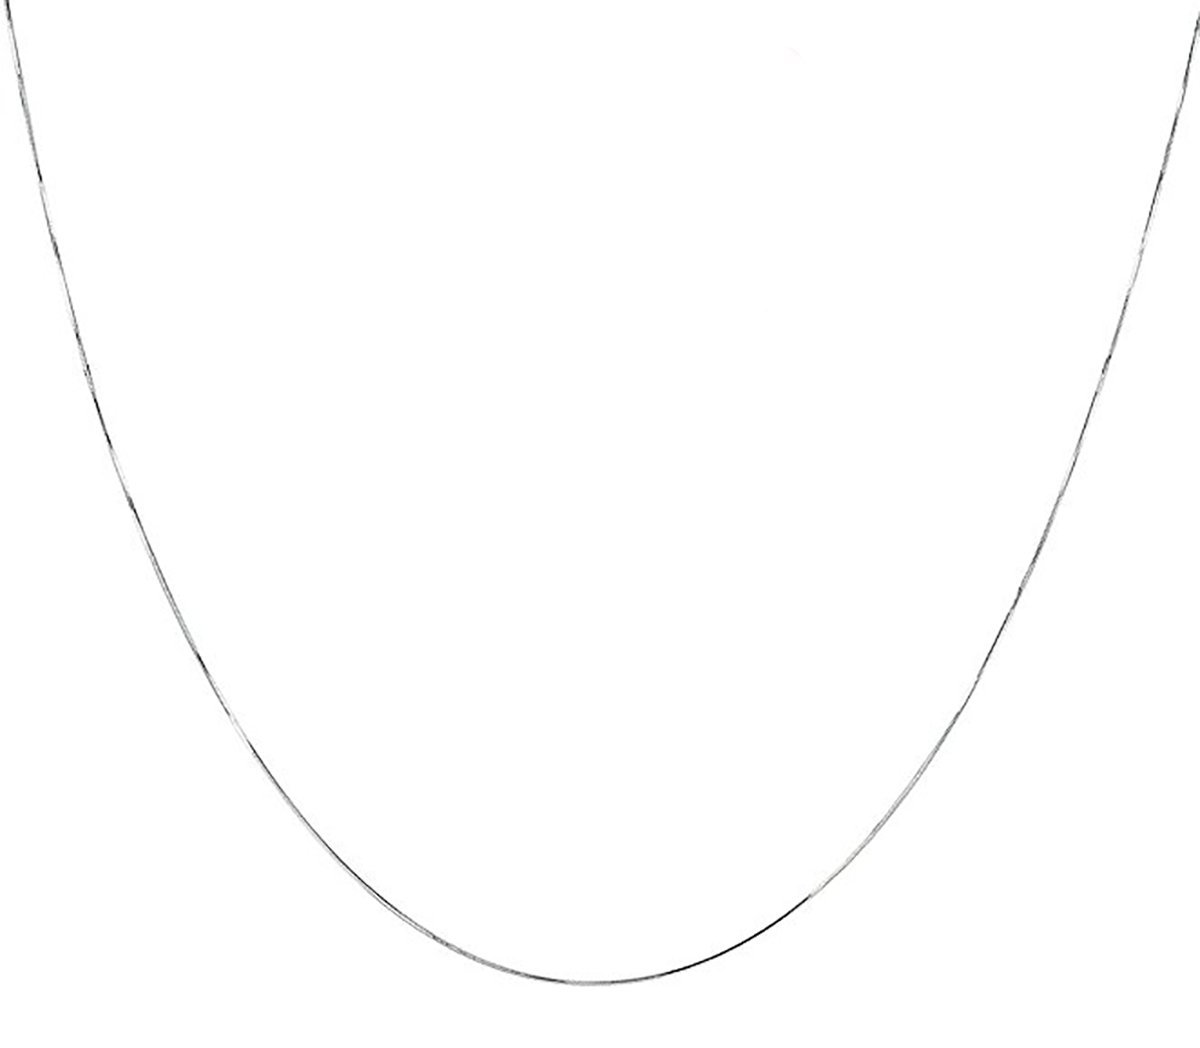 925 Sterling Silver Italian 1MM 8 Side Diamond Cut Snake Chain Necklace Lobster Claw Clasp With Extra Free Gift (1 mm 20.0 Inches 8DS Rhodium Plated 925 Silver)